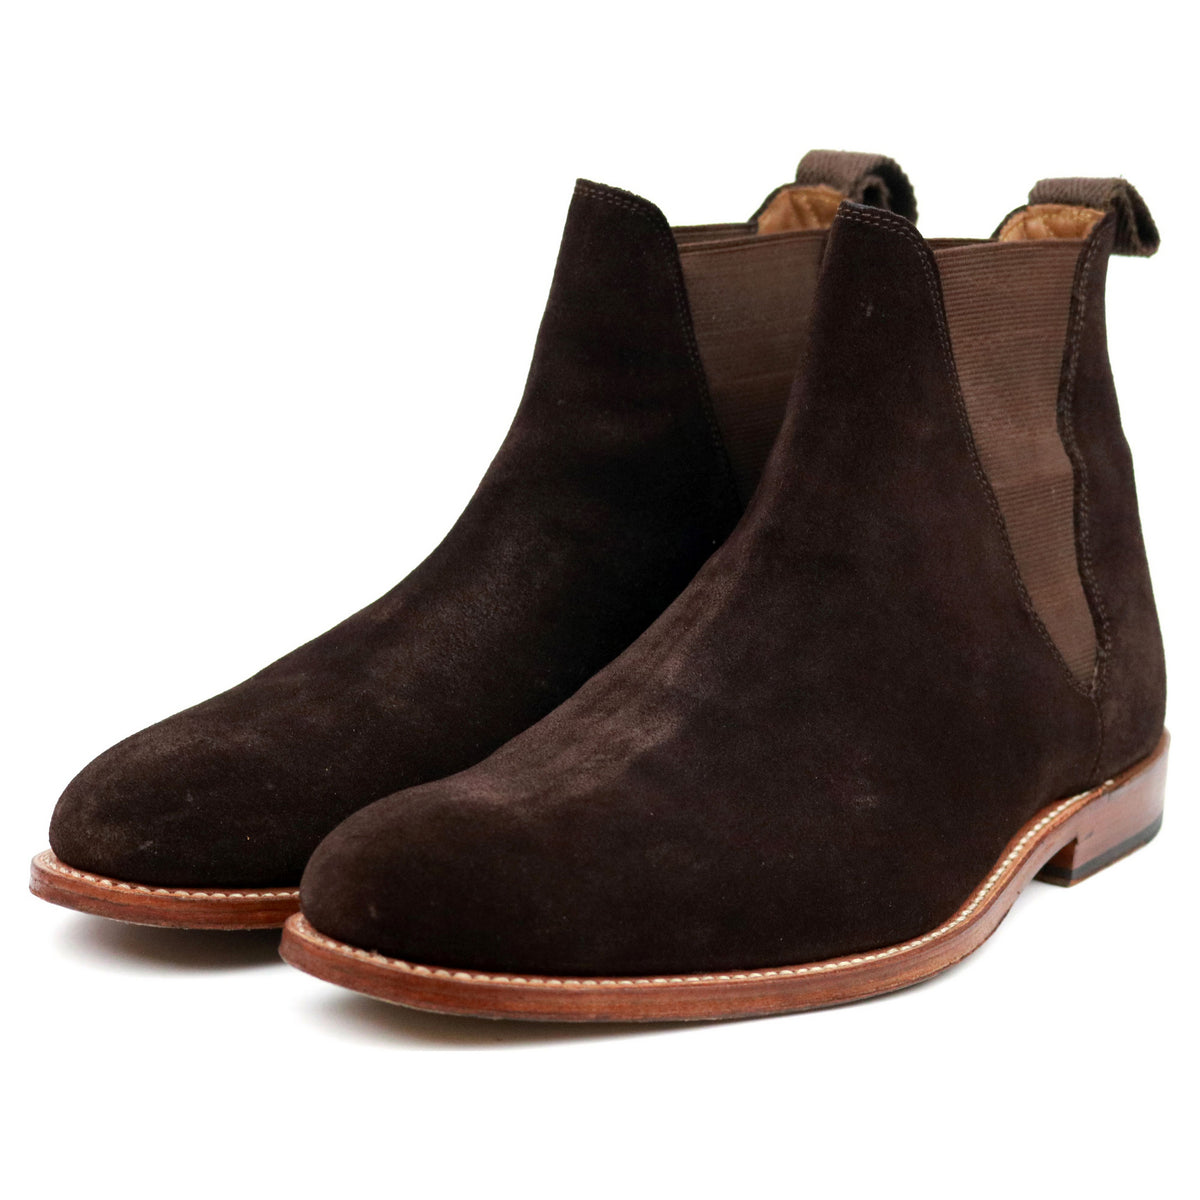 Grenson 'Nolan' Brown Suede Chelsea Boots UK 8 F